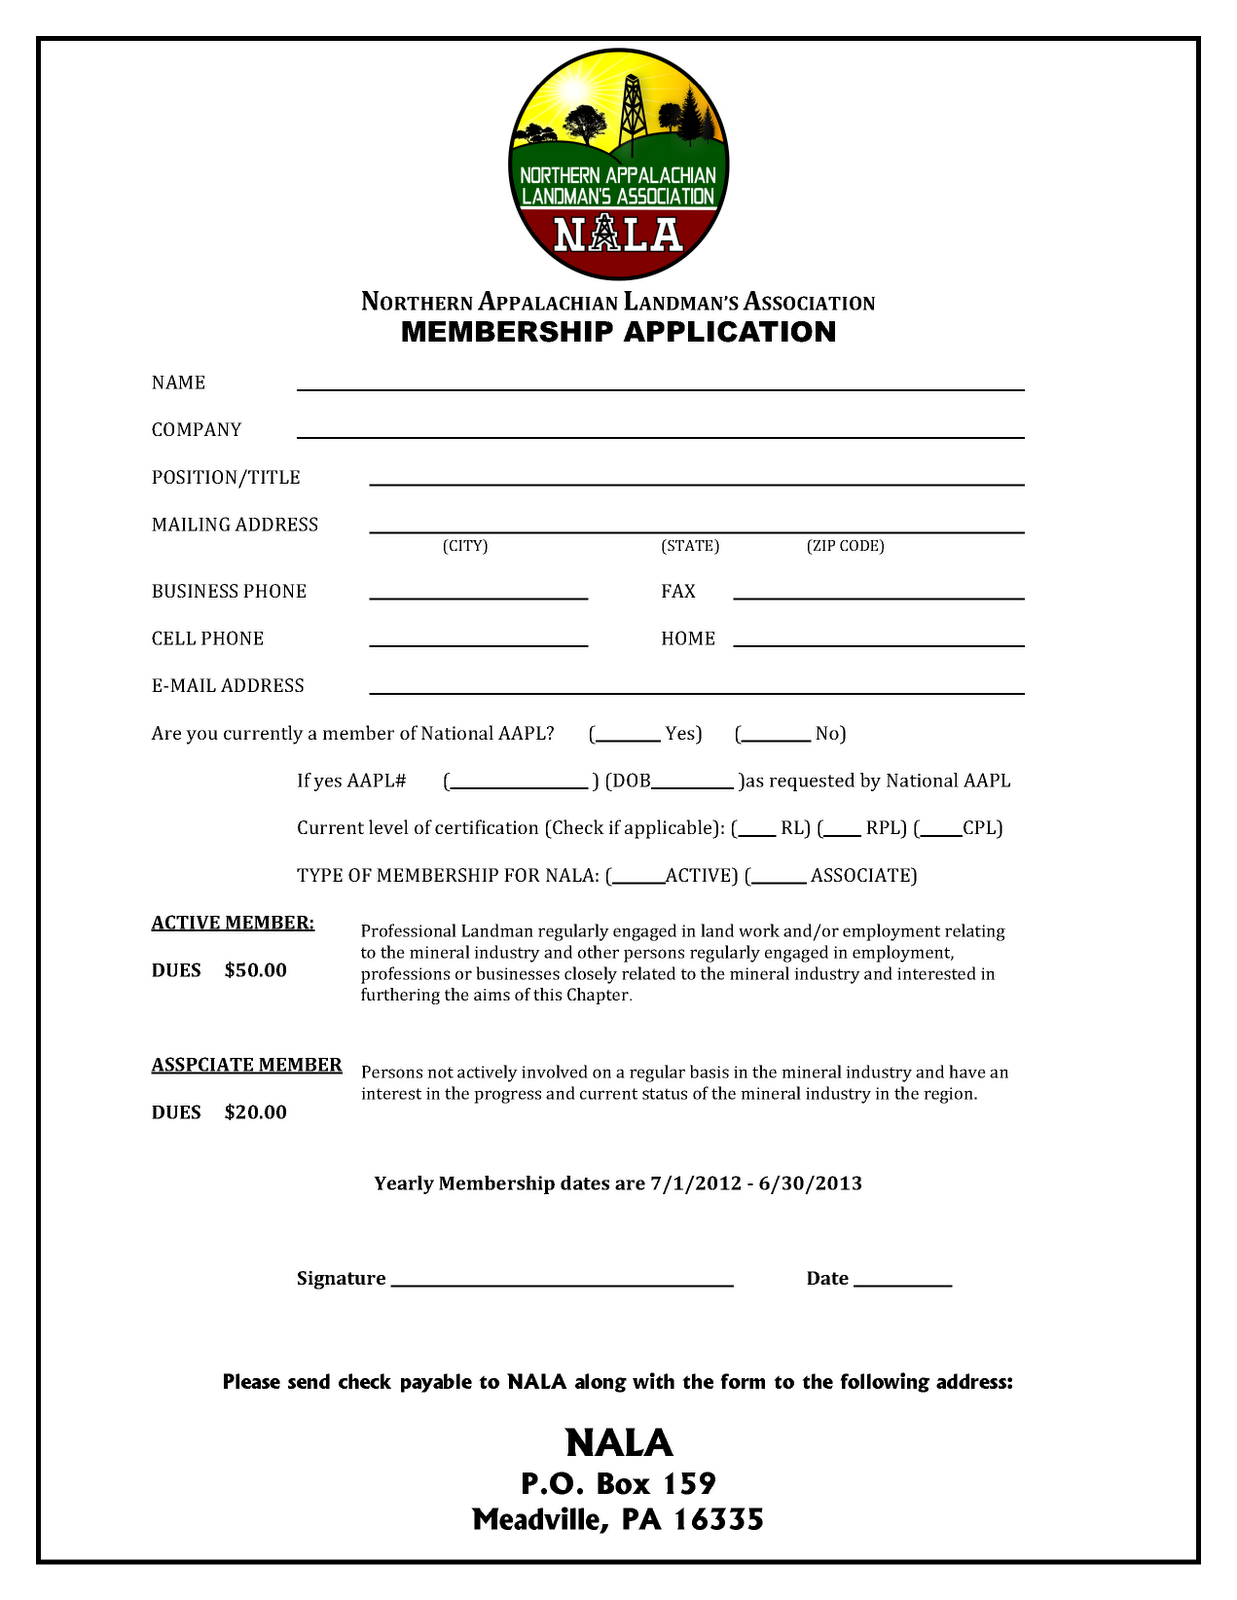 Member Application Form Template application for church – Membership Invoice Template